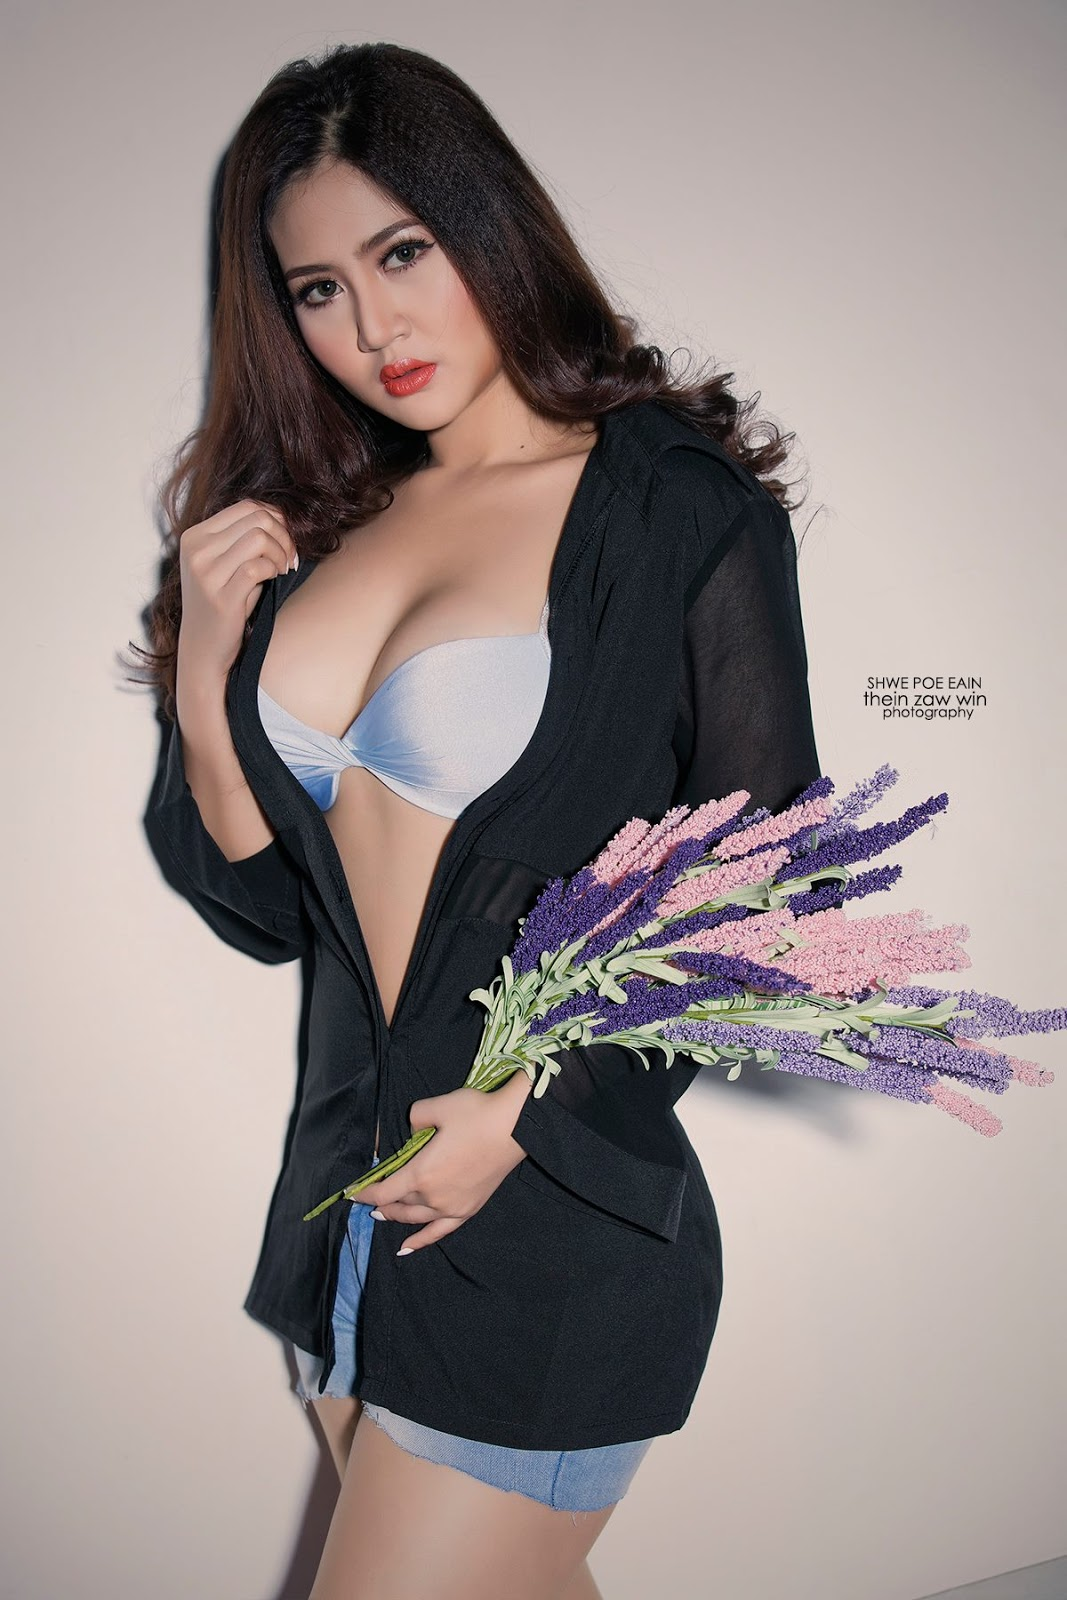 Shwe Poe Eain Fabulous Fashion Photoshoot-6809